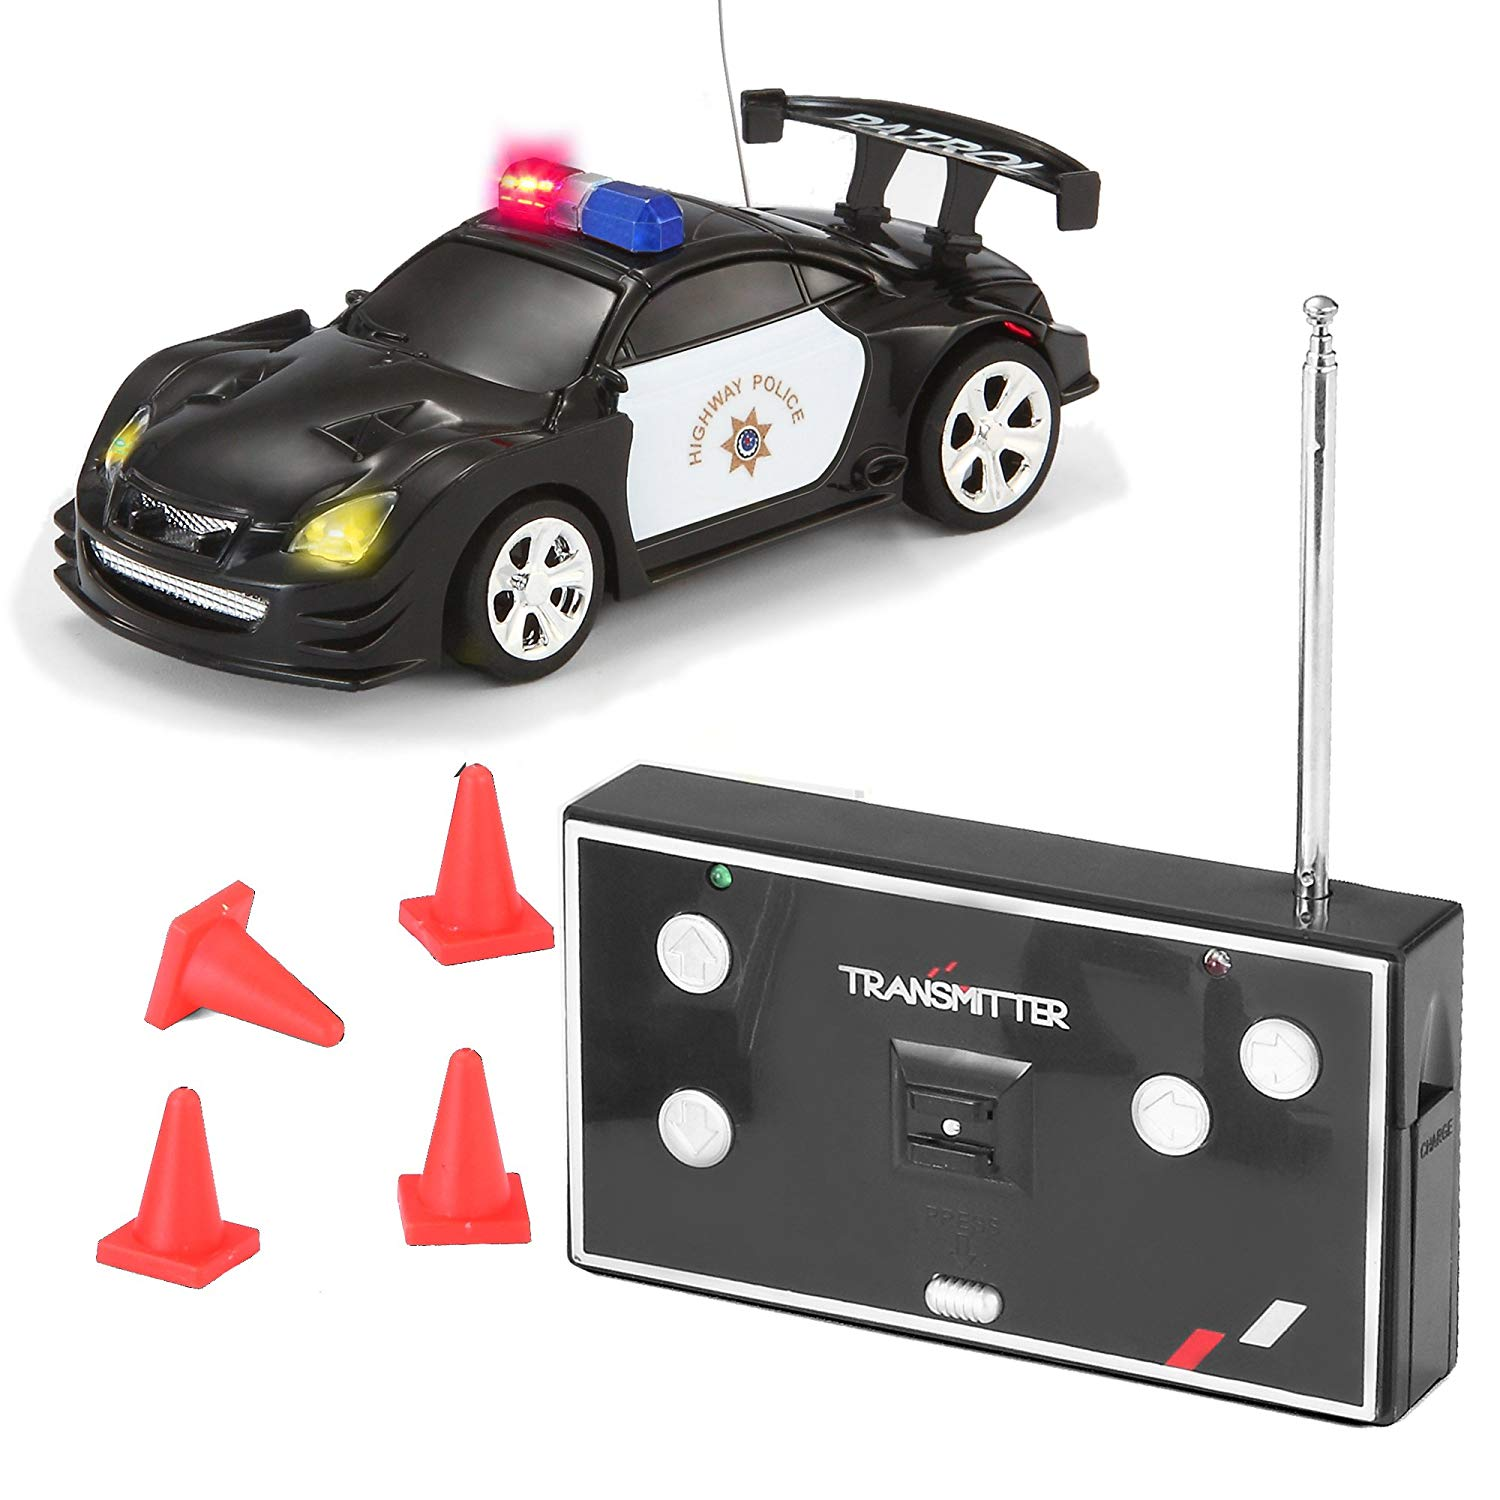 Joyin-Toy-RC-Remote-Radio-Control-Mini-Micro-Racing-Police-Car-Pocket-Race-Car-Toy-with-LED-Light-and-Siren-Sound